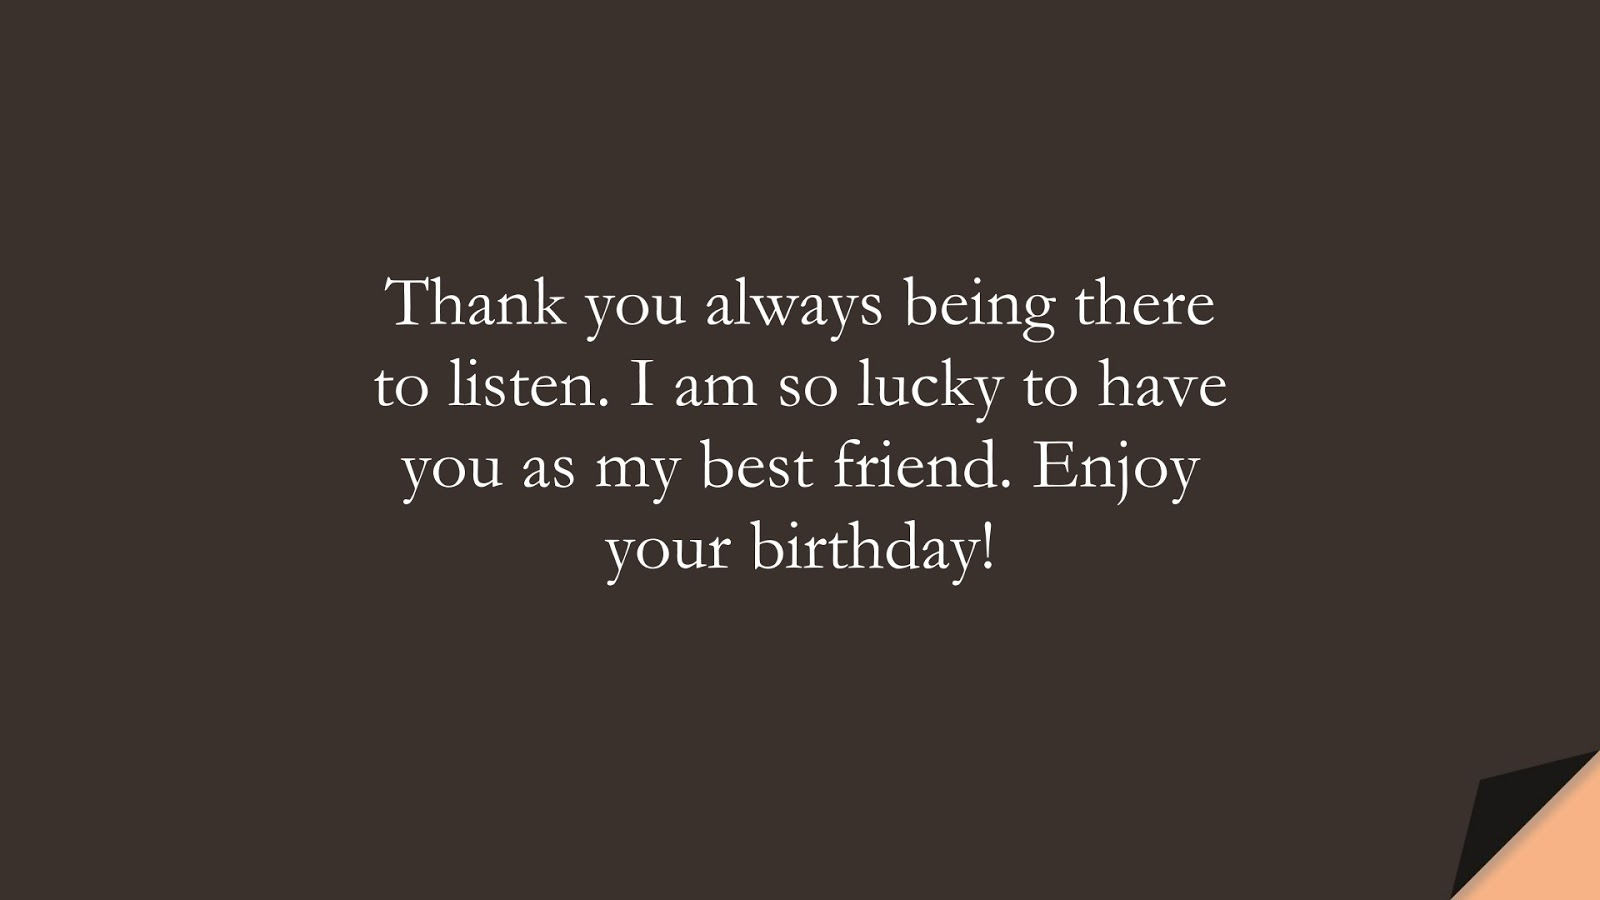 Thank you always being there to listen. I am so lucky to have you as my best friend. Enjoy your birthday!FALSE